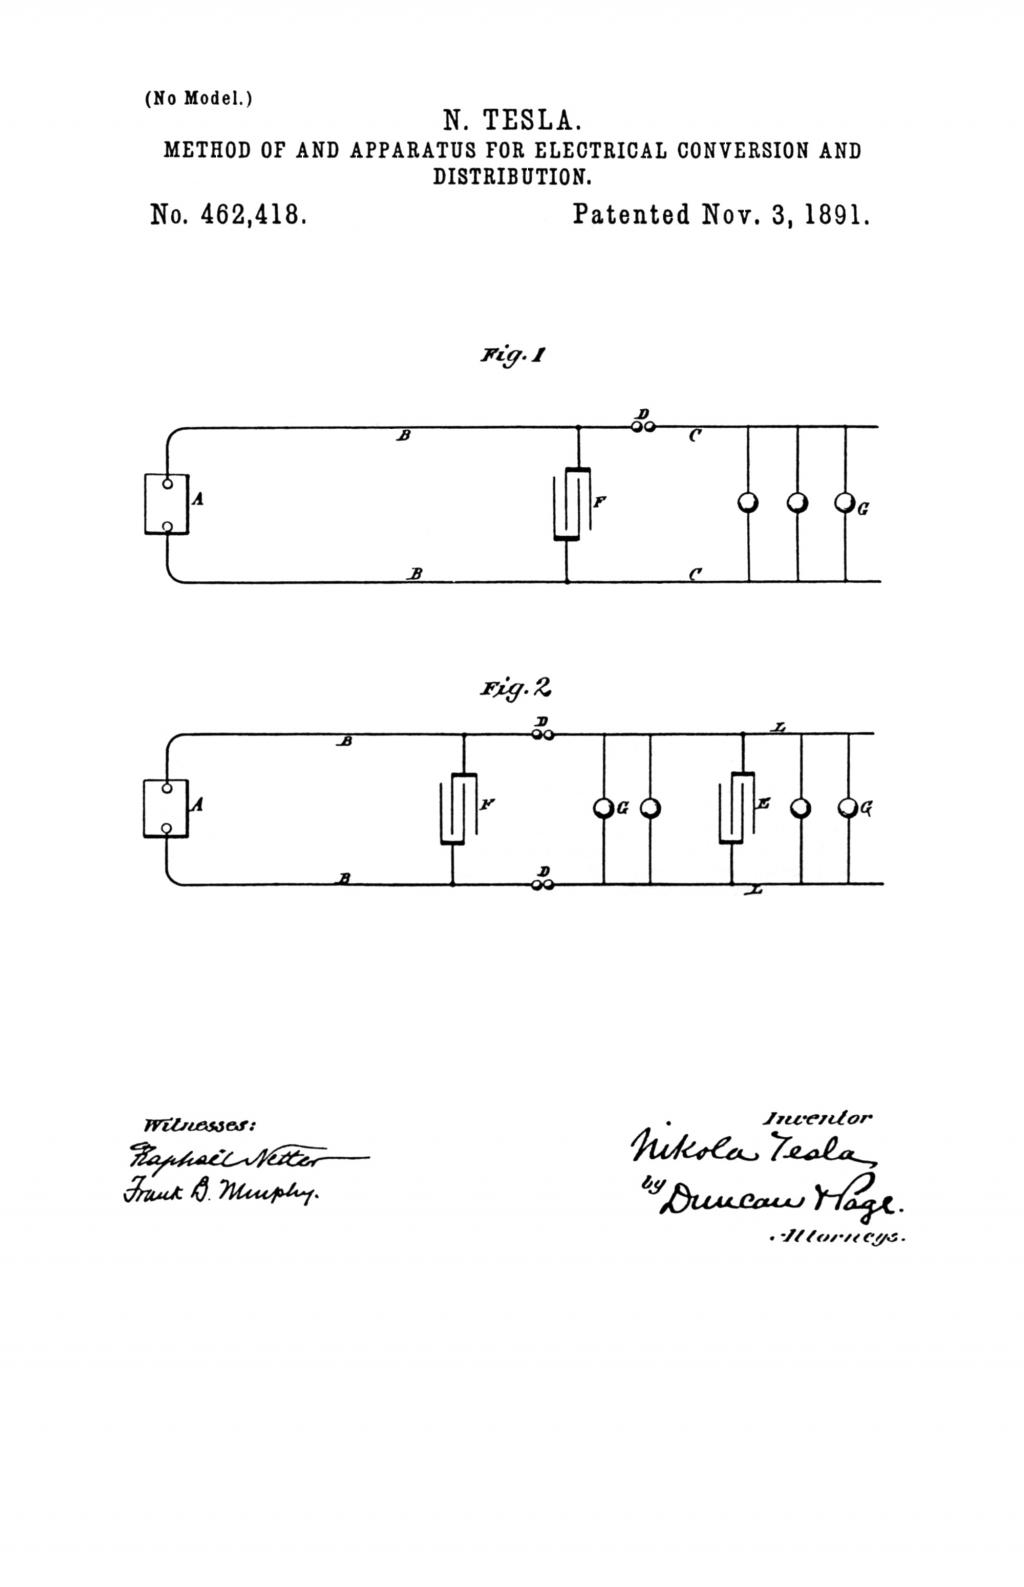 Nikola Tesla U.S. Patent 462,418 - Method of and Apparatus for Electrical Conversion and Distribution - Image 1